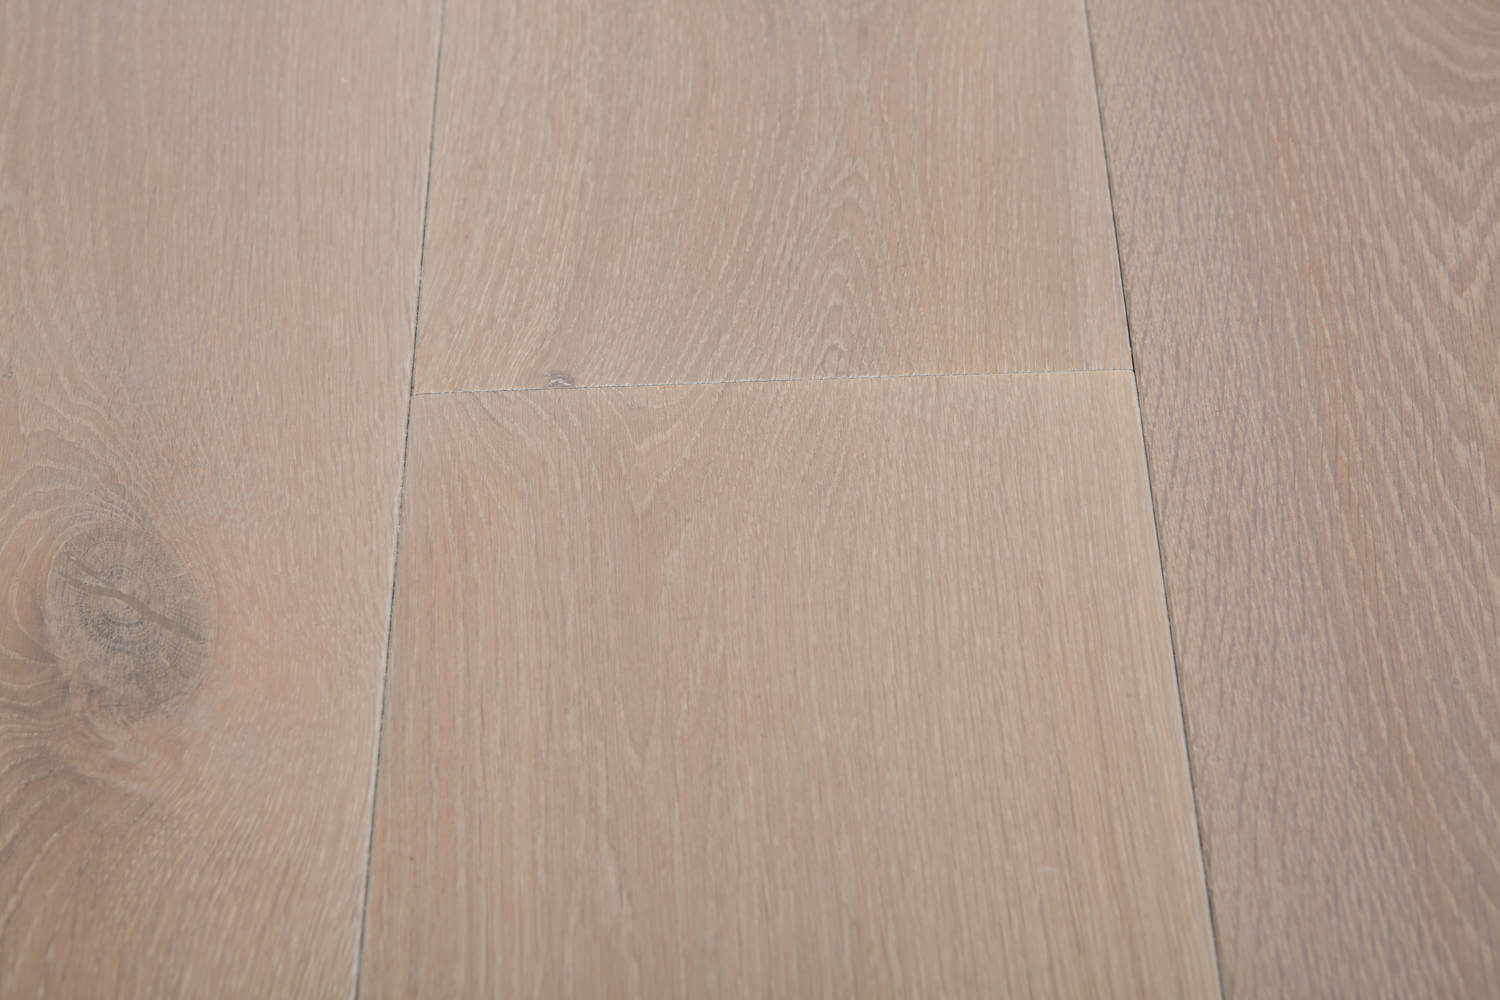 3 Oak Floor Product Silver Dusk